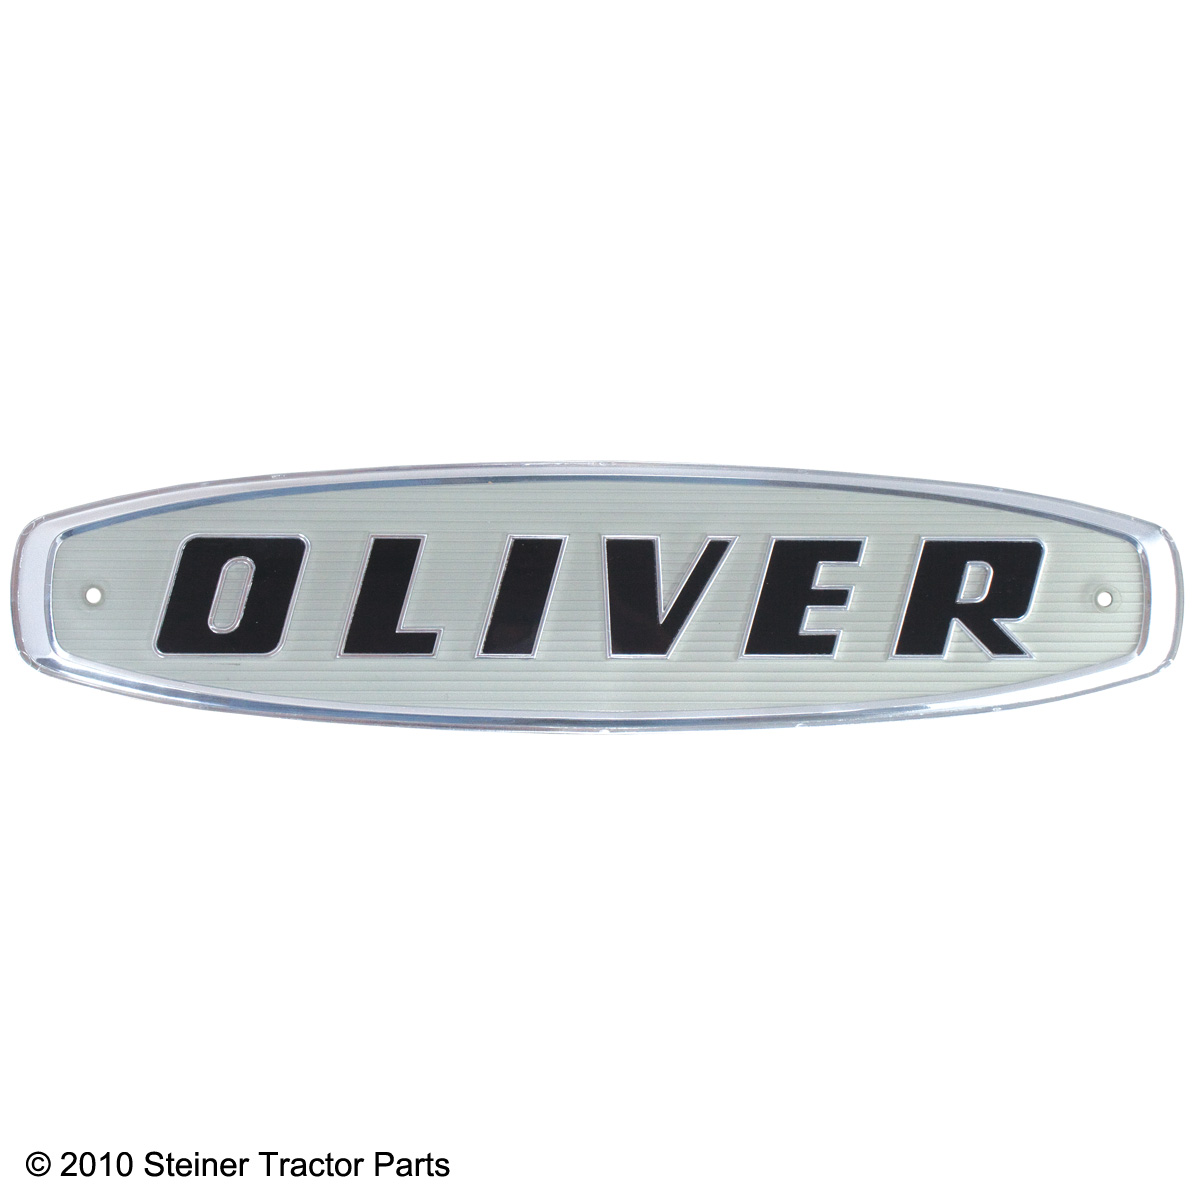 hight resolution of  brand new front emblem for the following models oliver 550 770 880